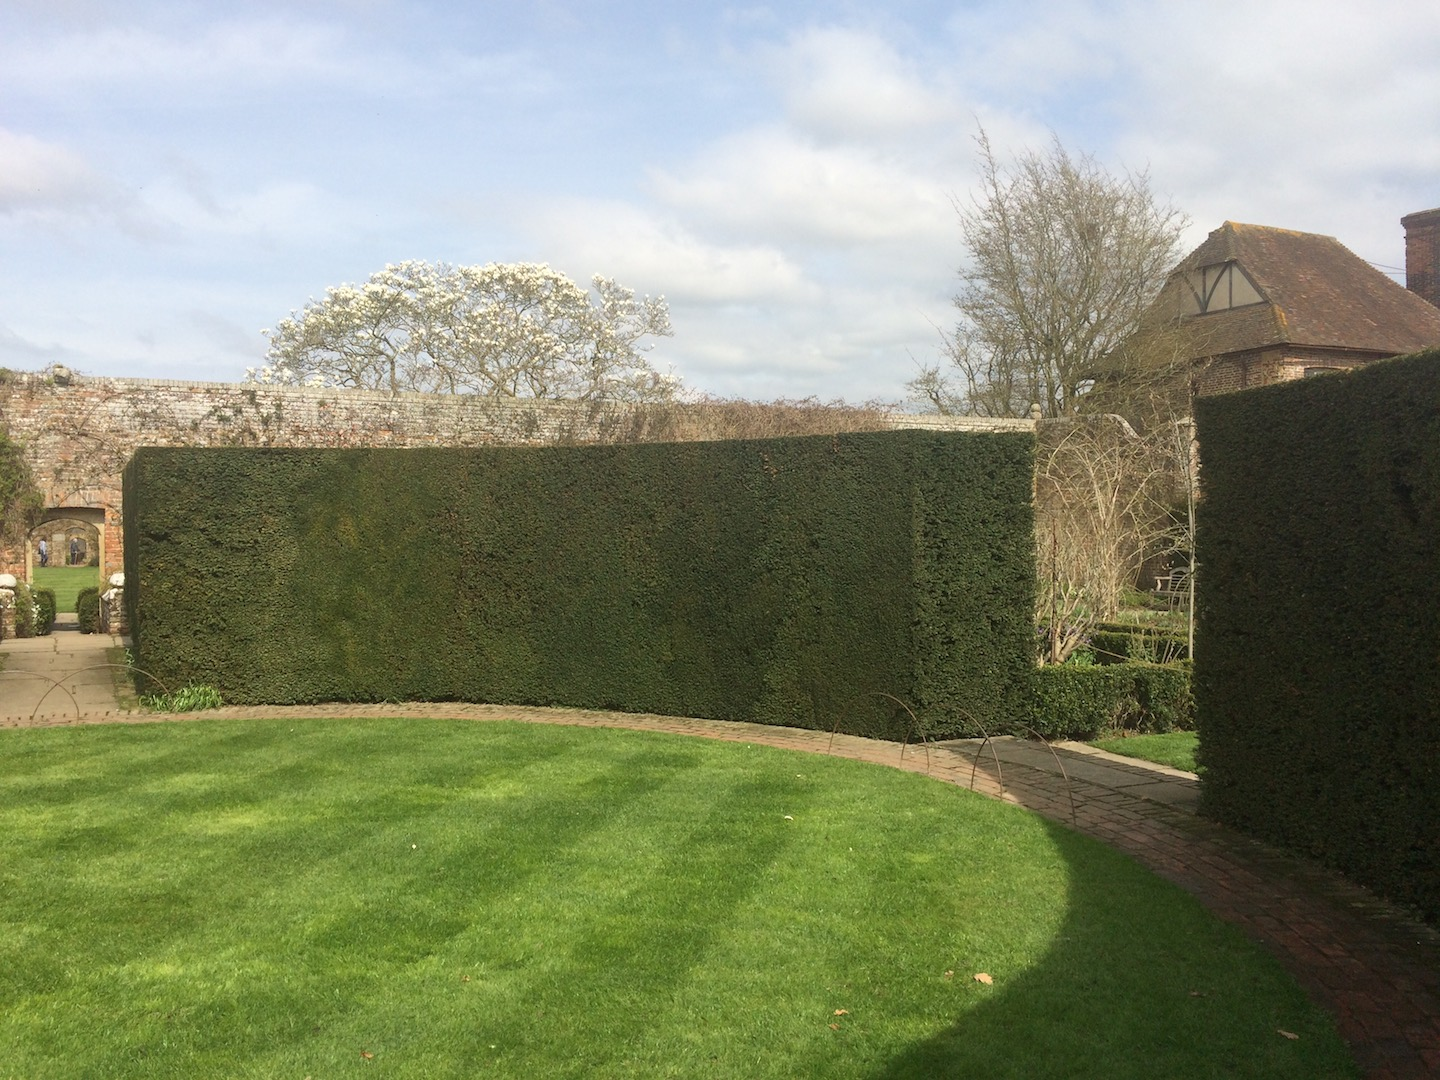 Classic English circular Yew hedge